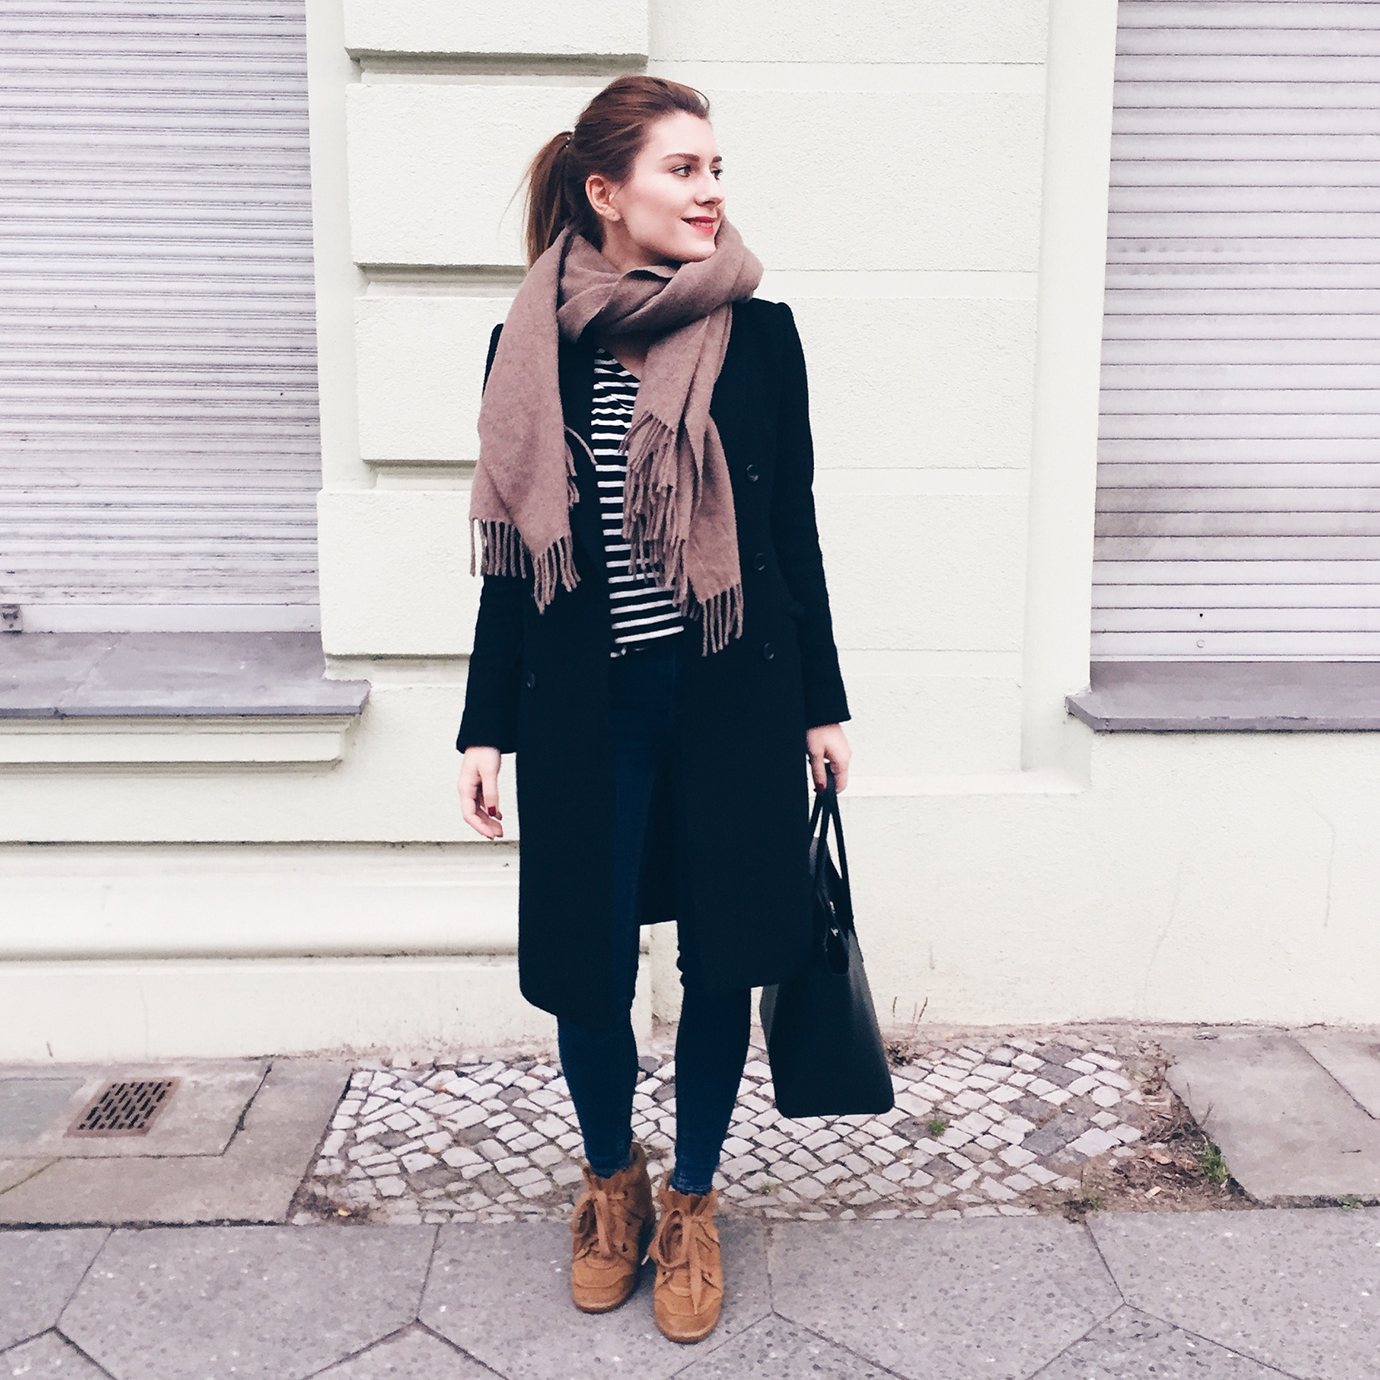 7things_52_outfit